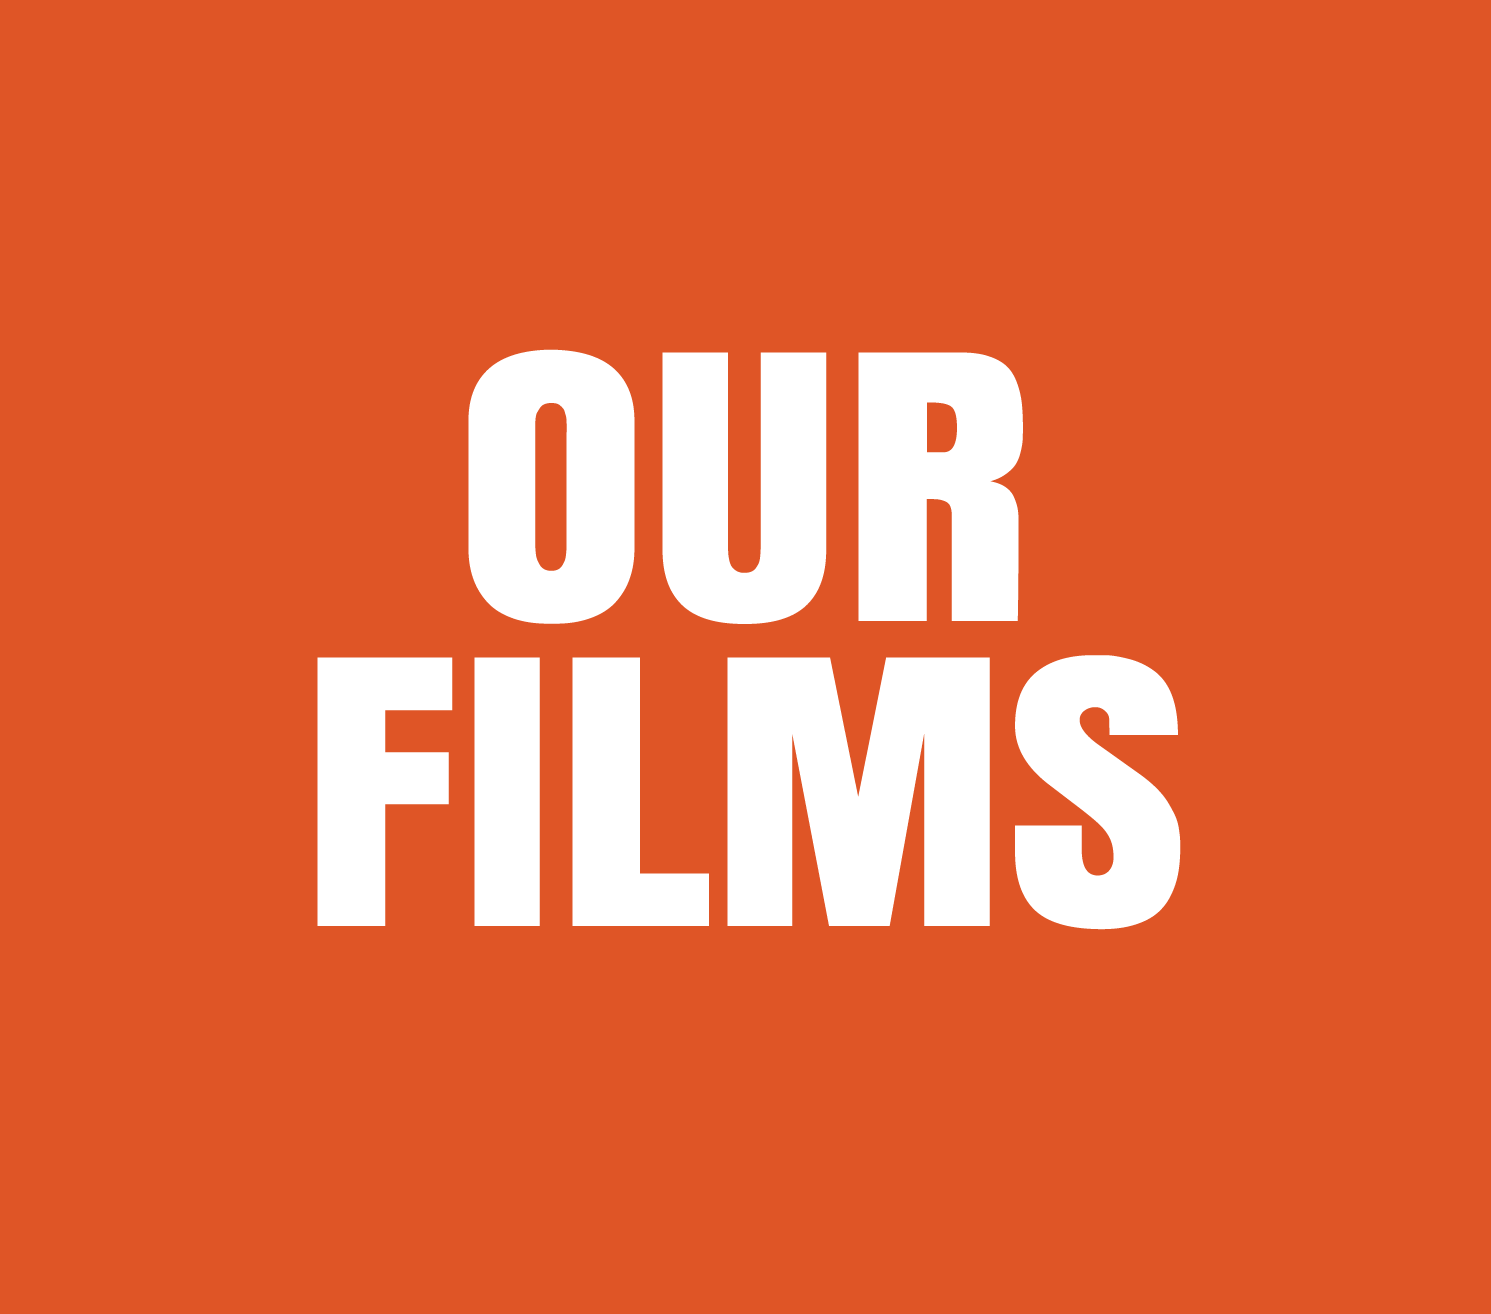 OUR FILMS